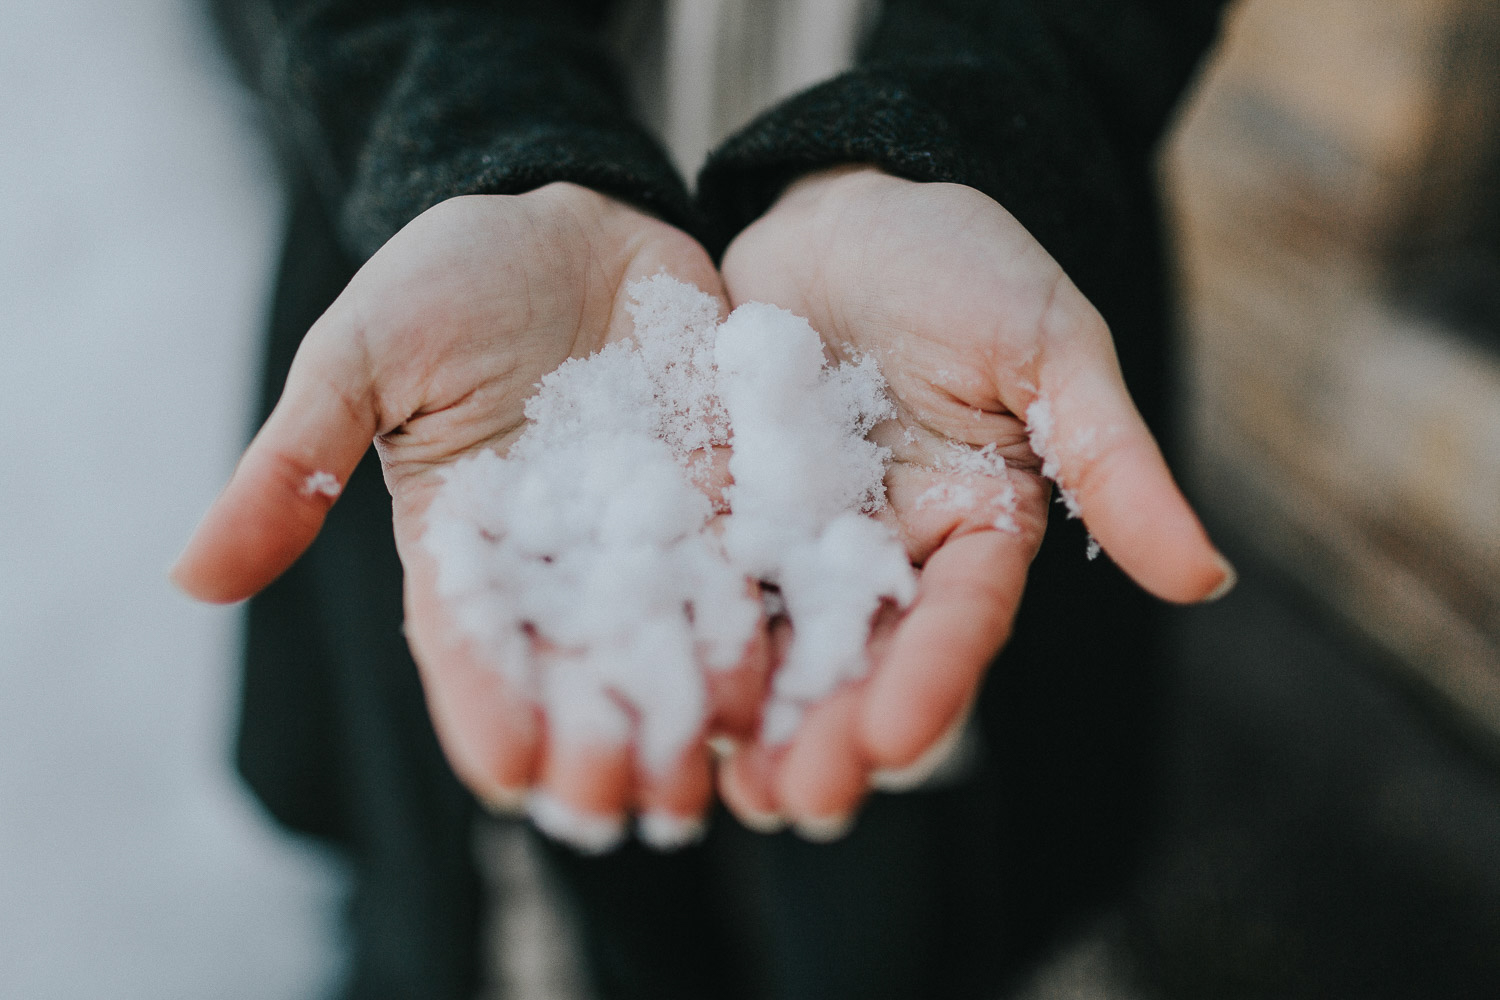 Image of snow in the hands